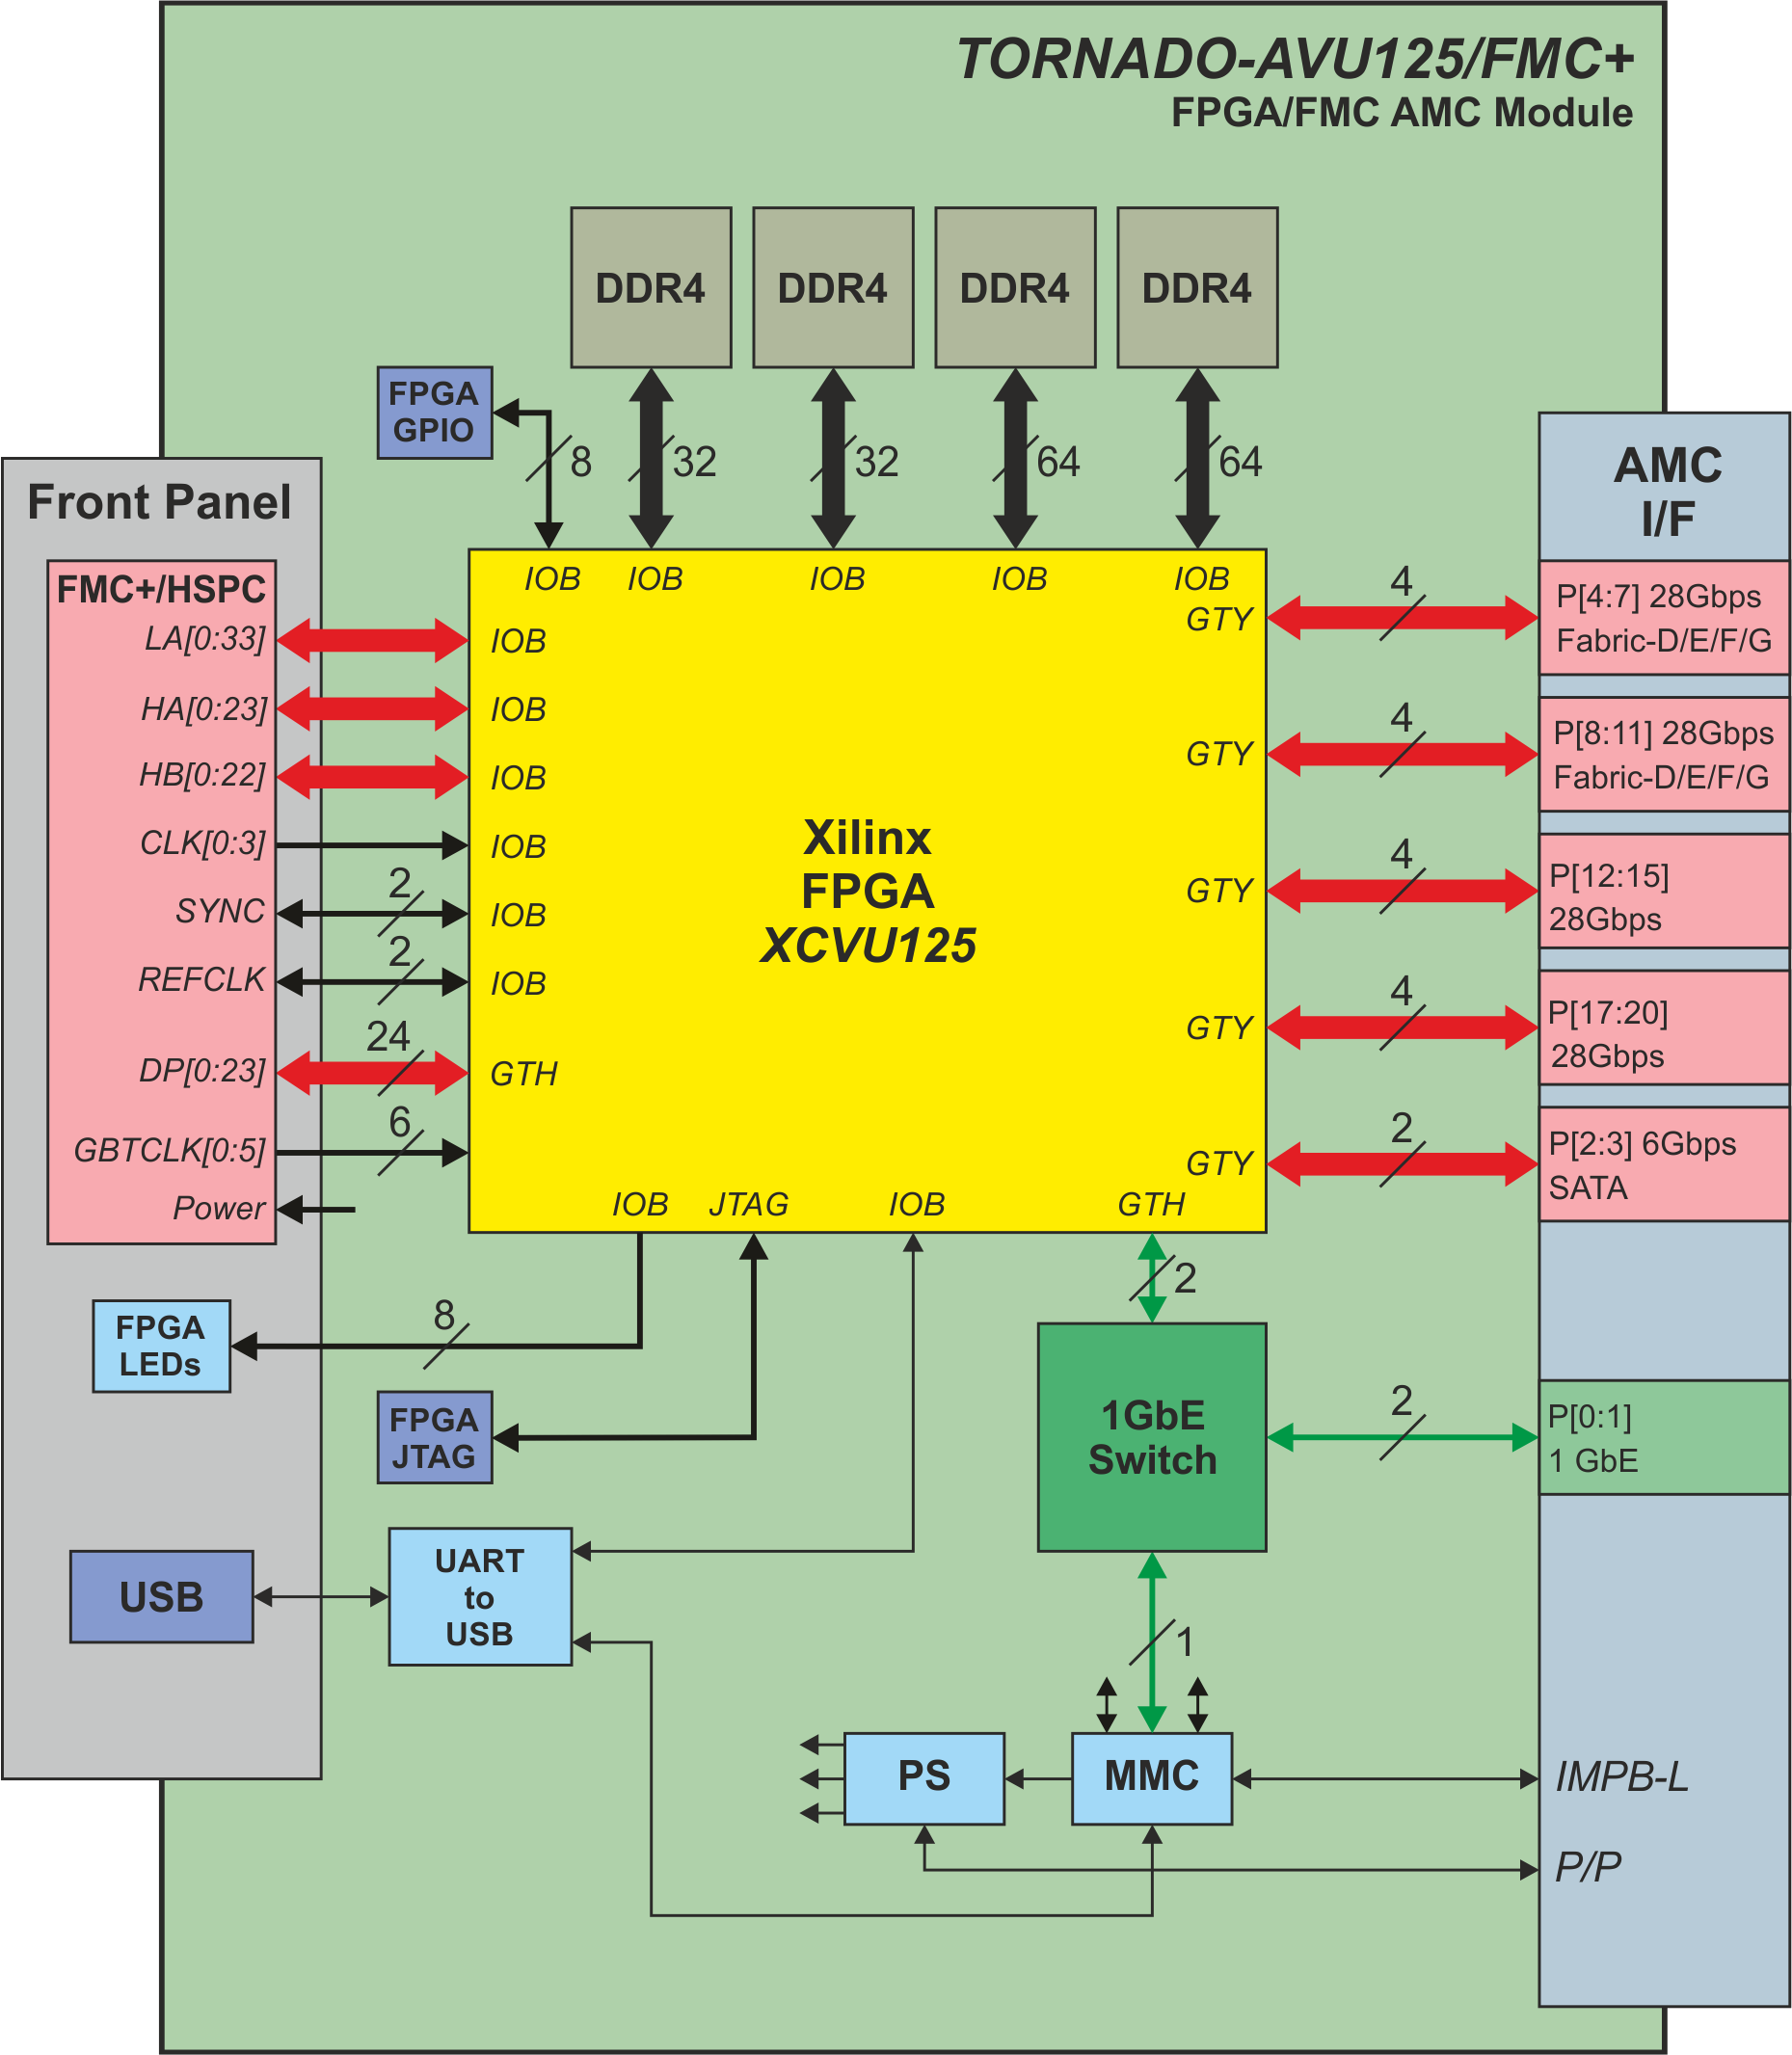 TORNADO-Axxx/FMC (TAxxx/FMC) AMC Modules with FPGA and FMC